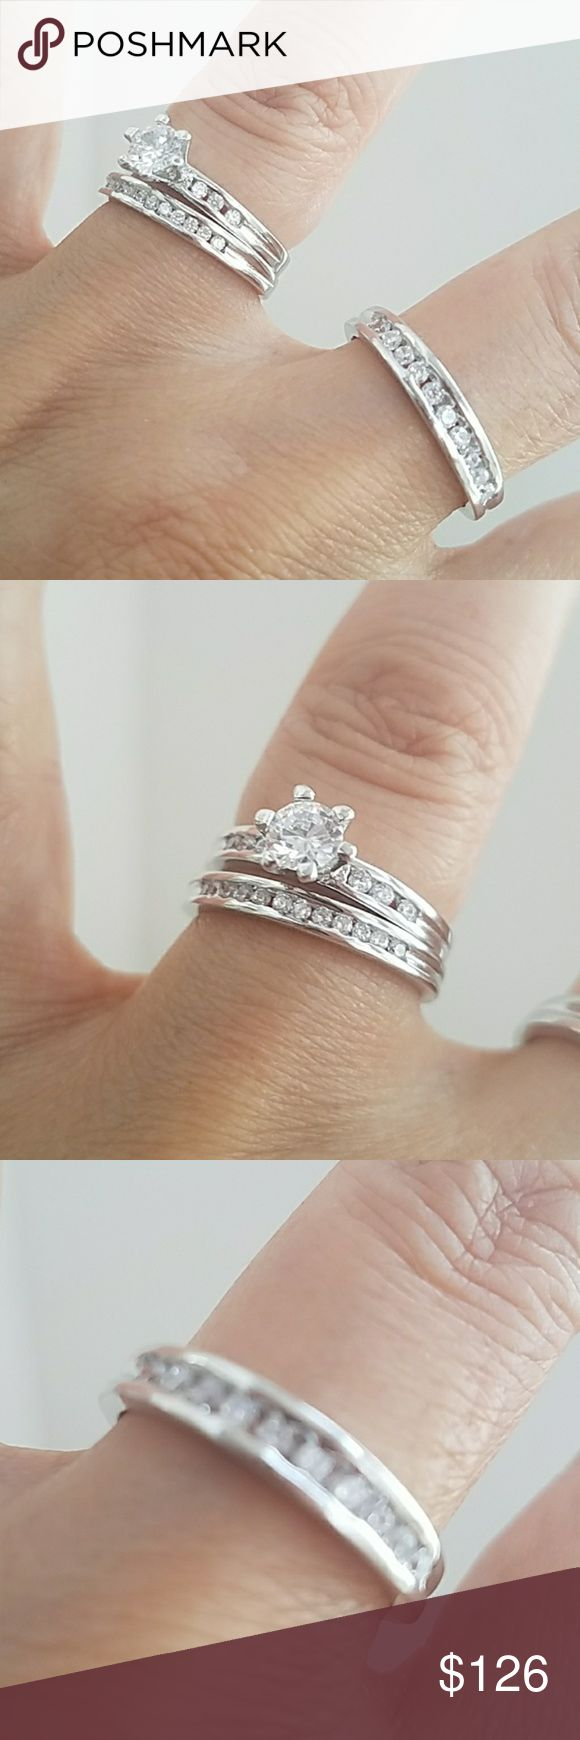 3pc set Engagement Ring wedding bands bridle Set 3pc set. Women's Engagement Ring with Wedding Band for Bride and Groom. 3pc set. 1/2 karat cubic zirconia center stone in a 14k White Gold plated over Sterling silver setting. Available in all sizes. Please message me your ring size your Ring sizes. Thanks please check out my other wedding 3pc sets in my closet Jewelry Rings